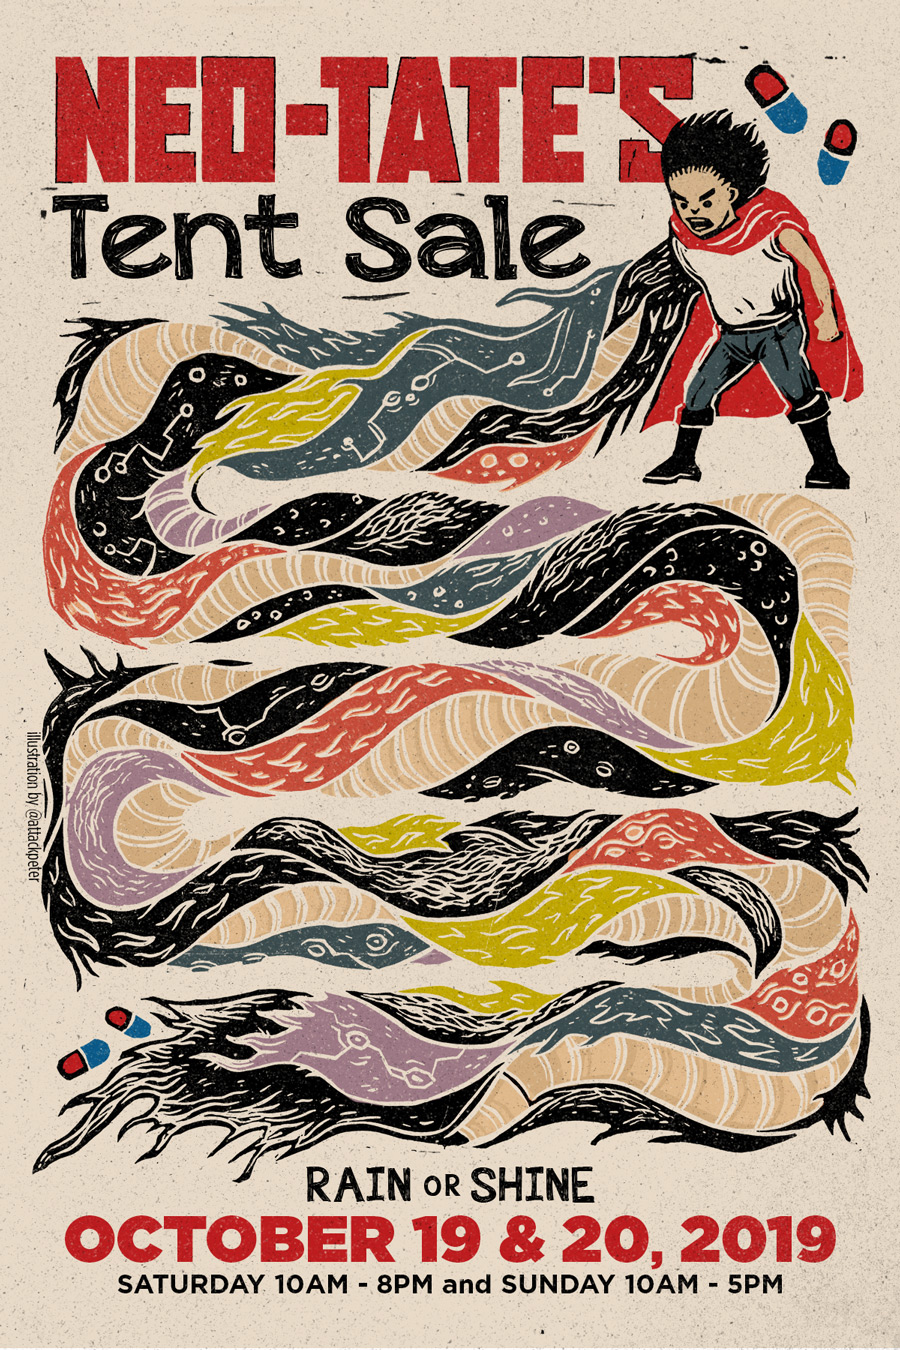 Neo-TATE'S Tent Sale Flyer Front